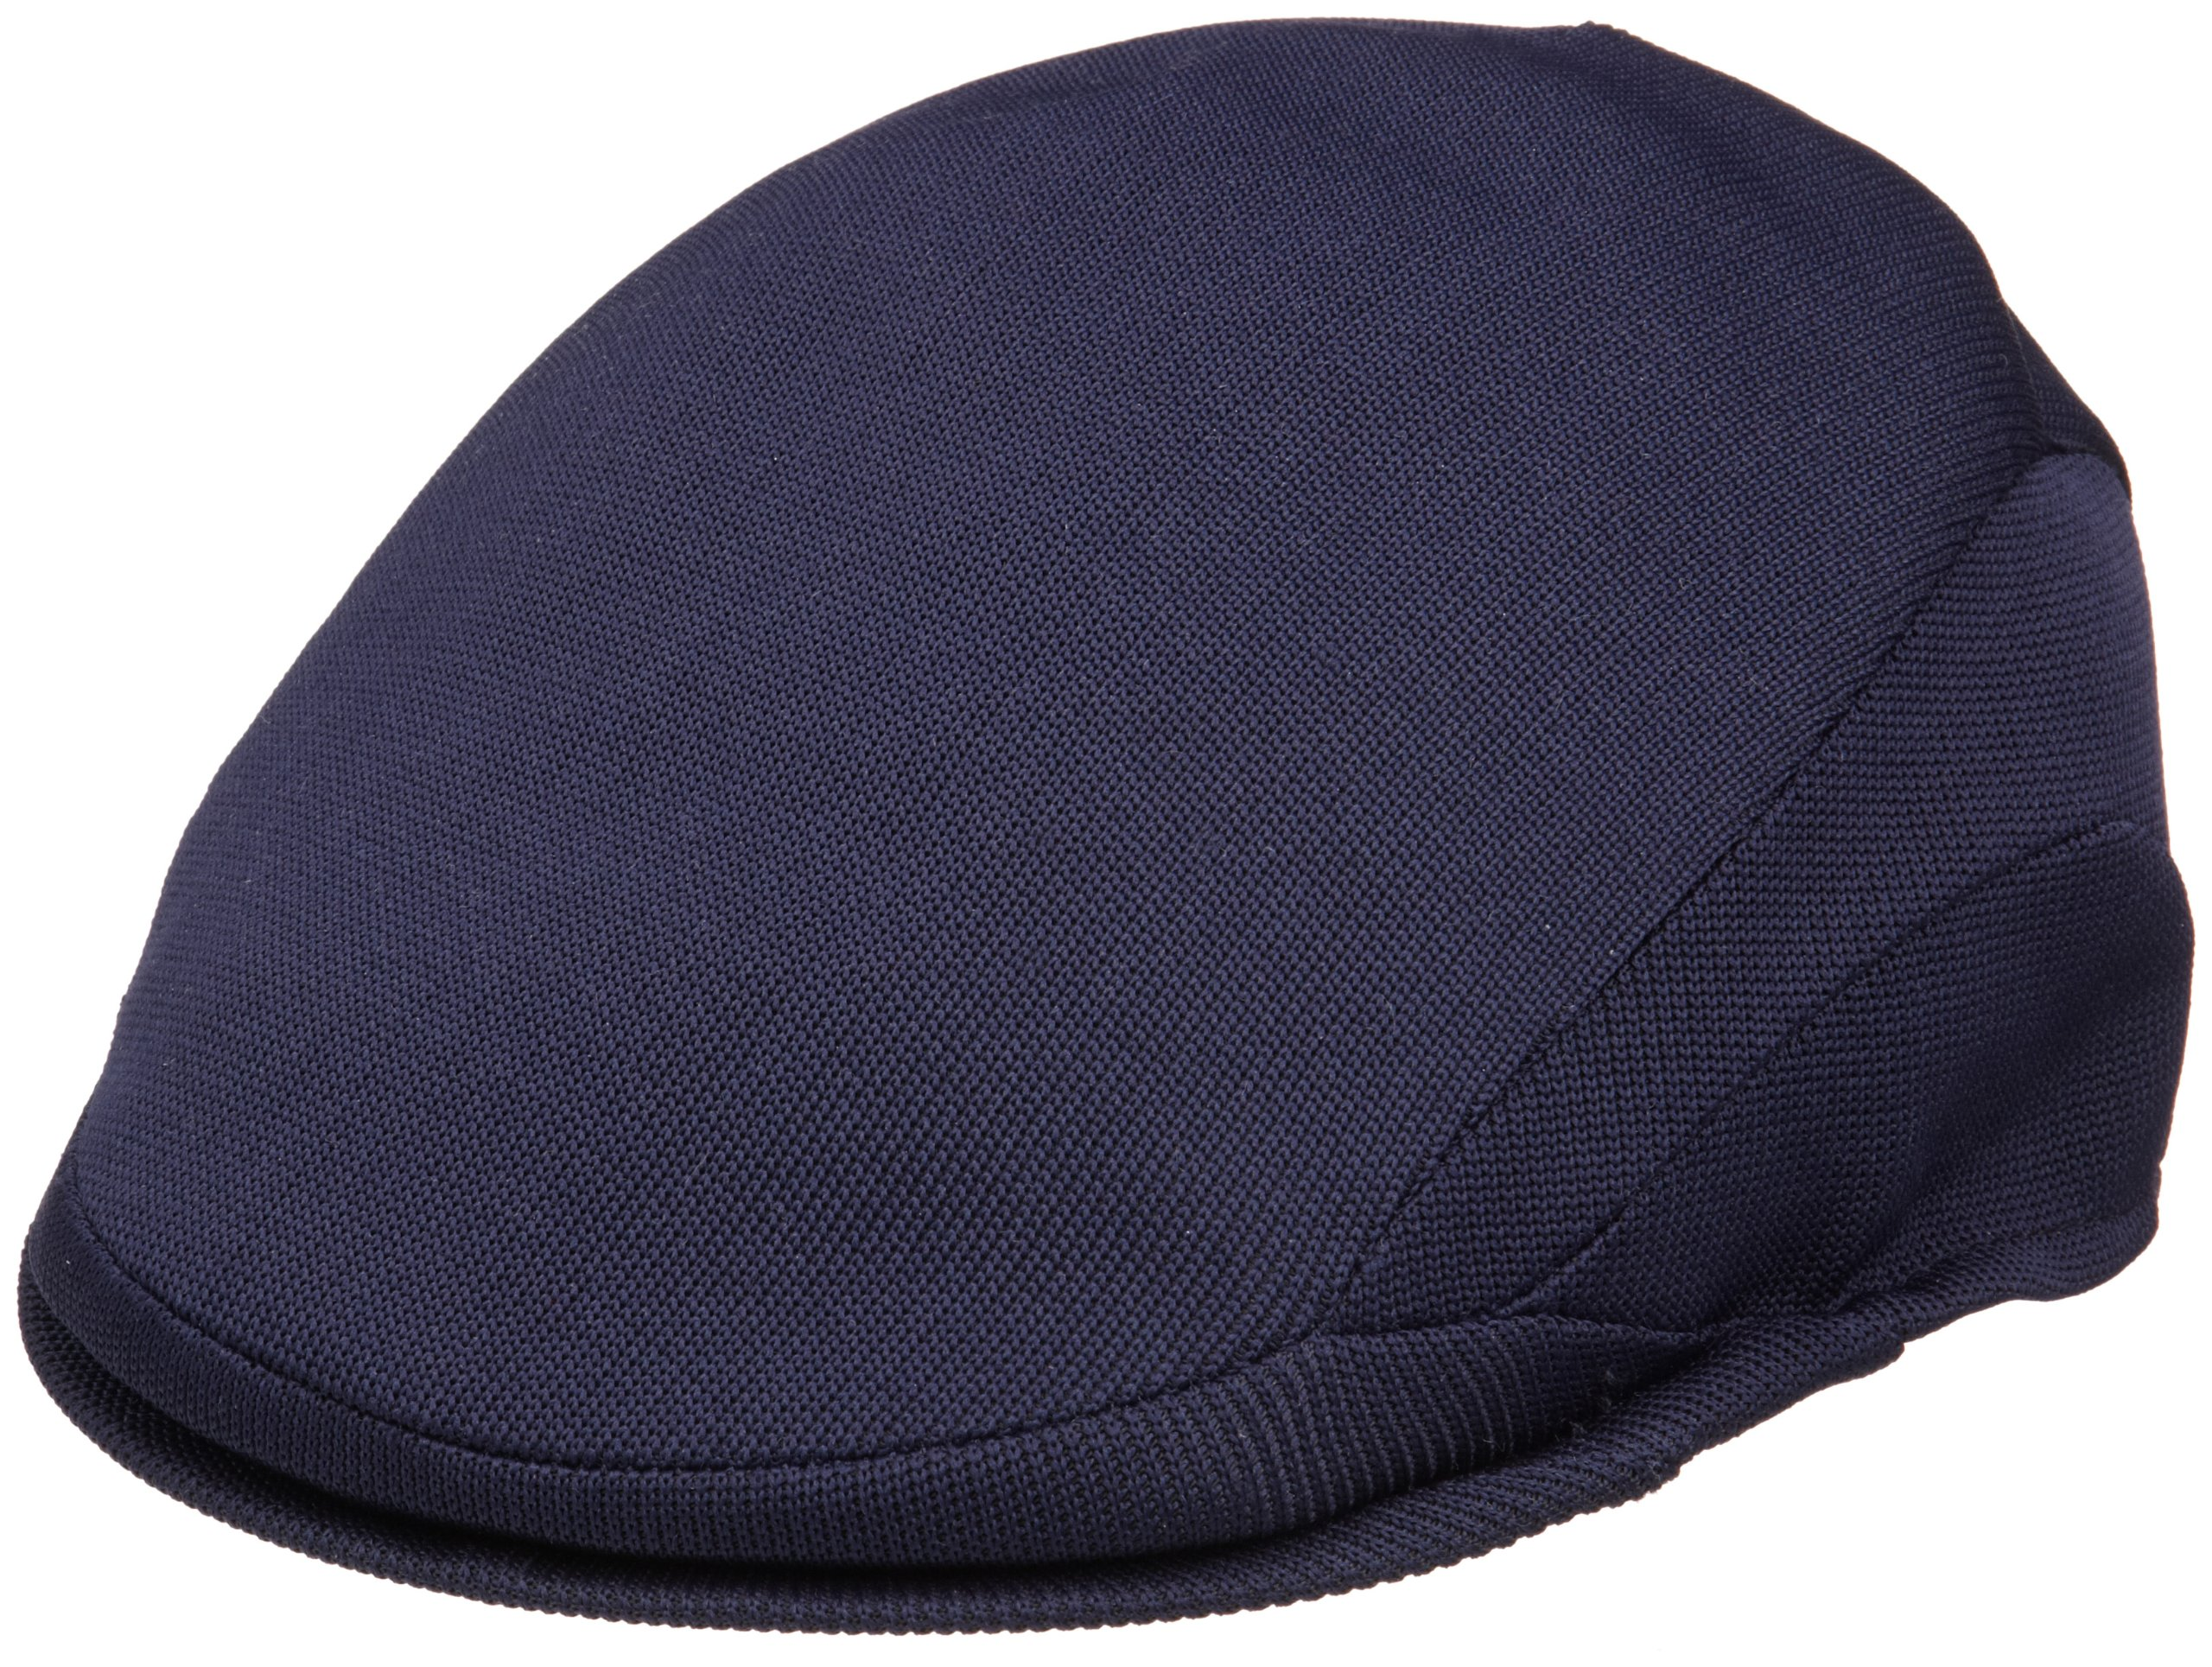 BleunavyFrStaille Fabricant S KangolCasquette KangolCasquette Homme N0vOm8nw